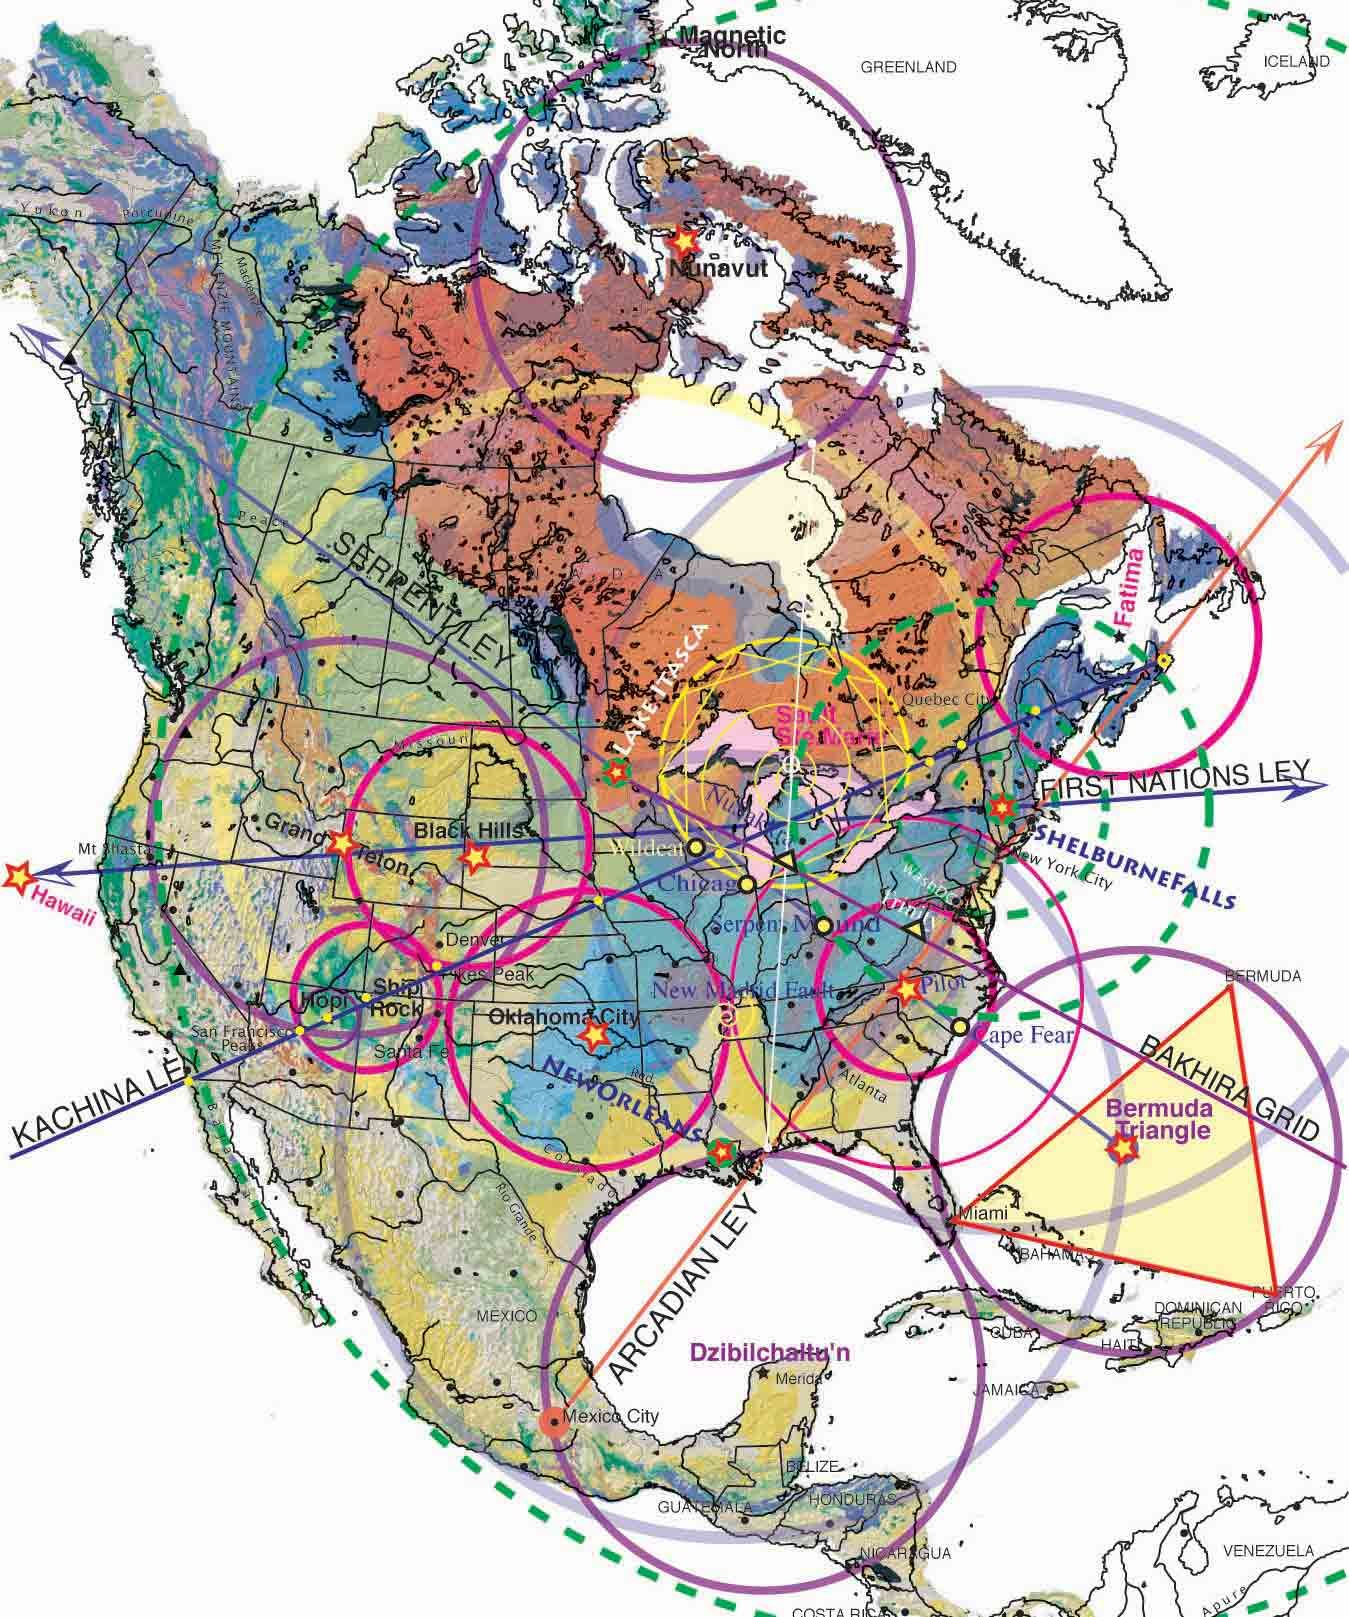 Magnetic Ley Lines In America Google Earth Overlay For Ley Lines - Bermuda in relation to us map